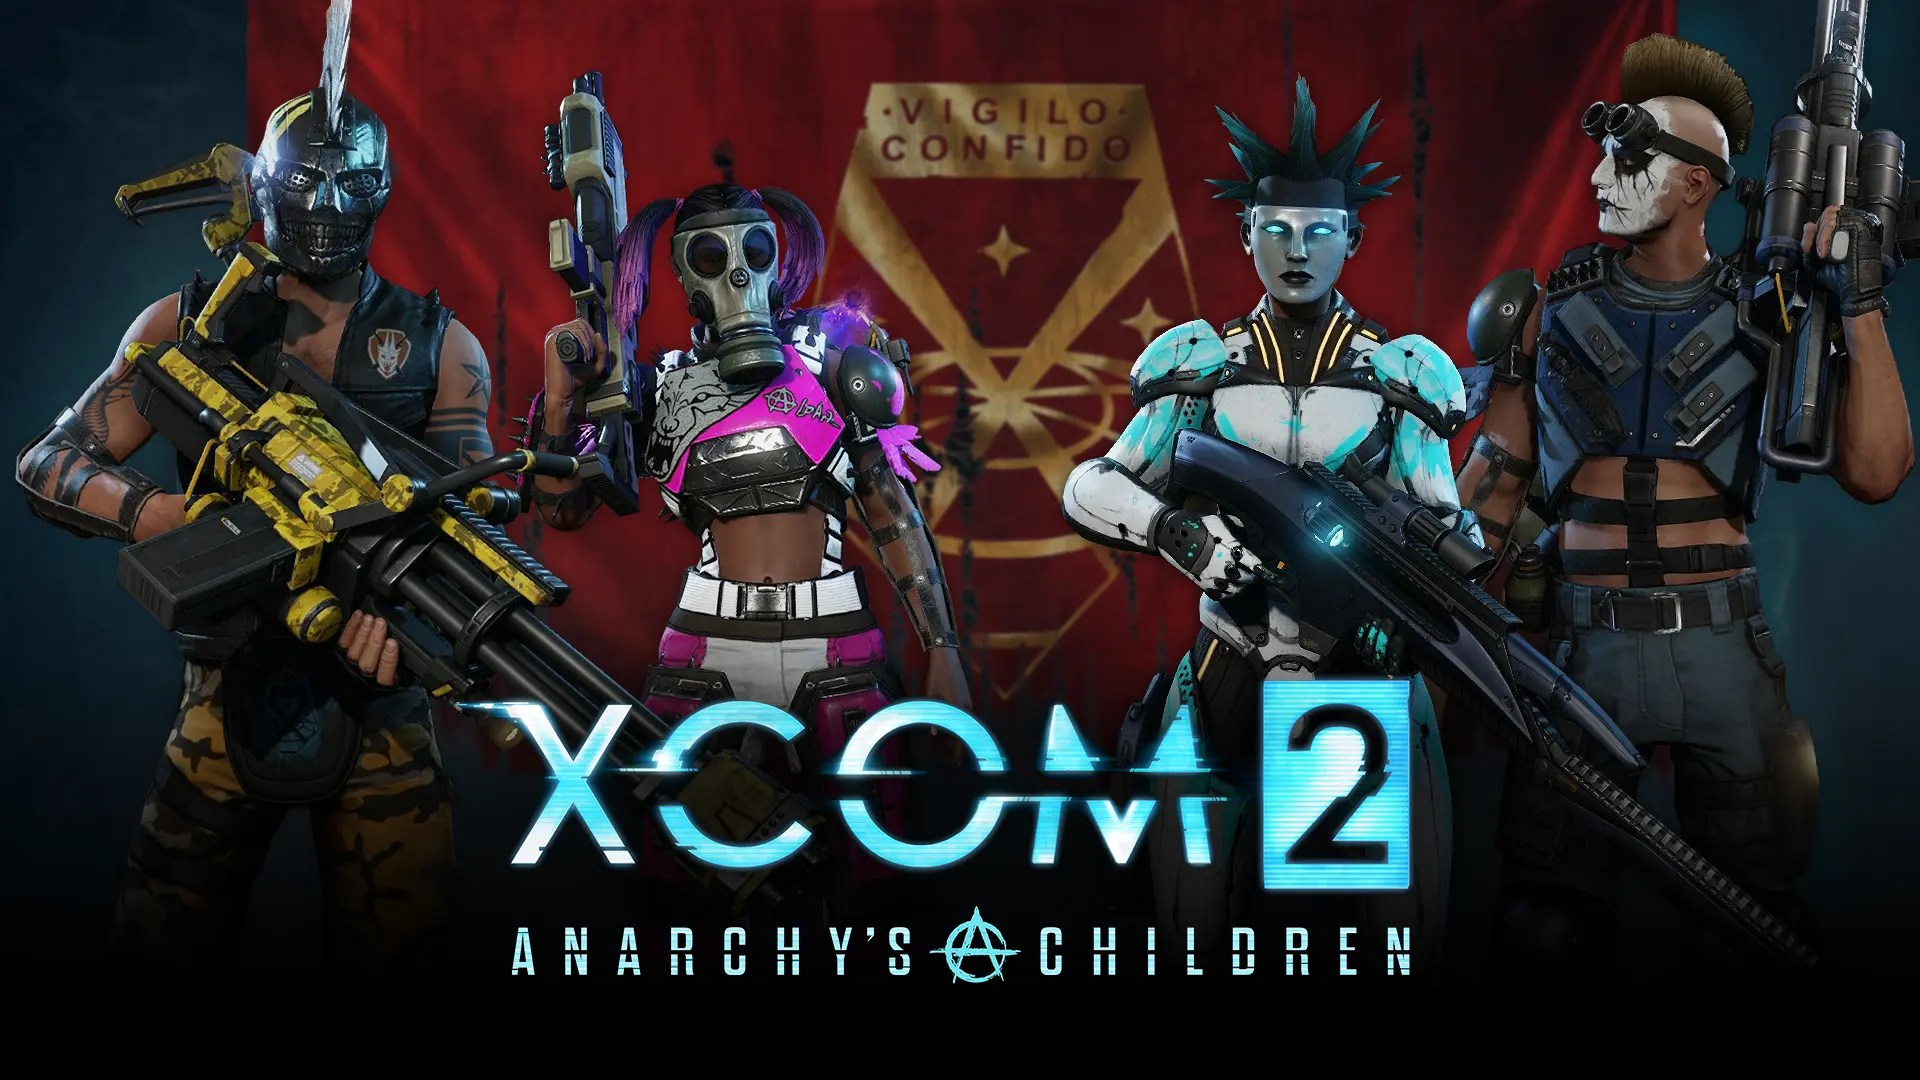 XCOM 2_Anarchy's Children Key Art